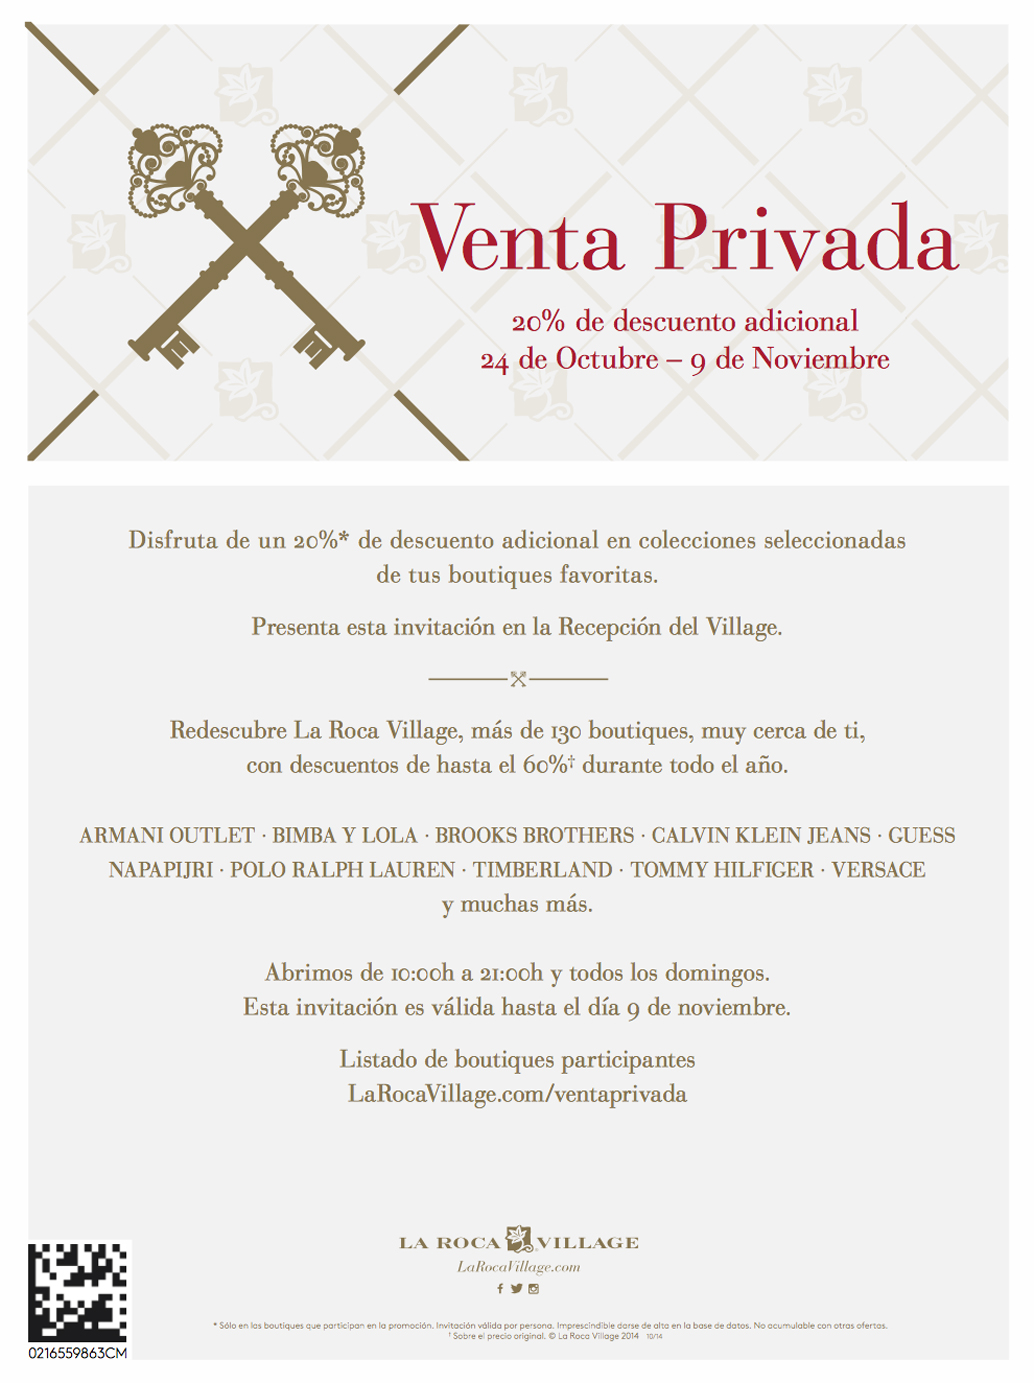 Venta-privada-La-Roca-Village